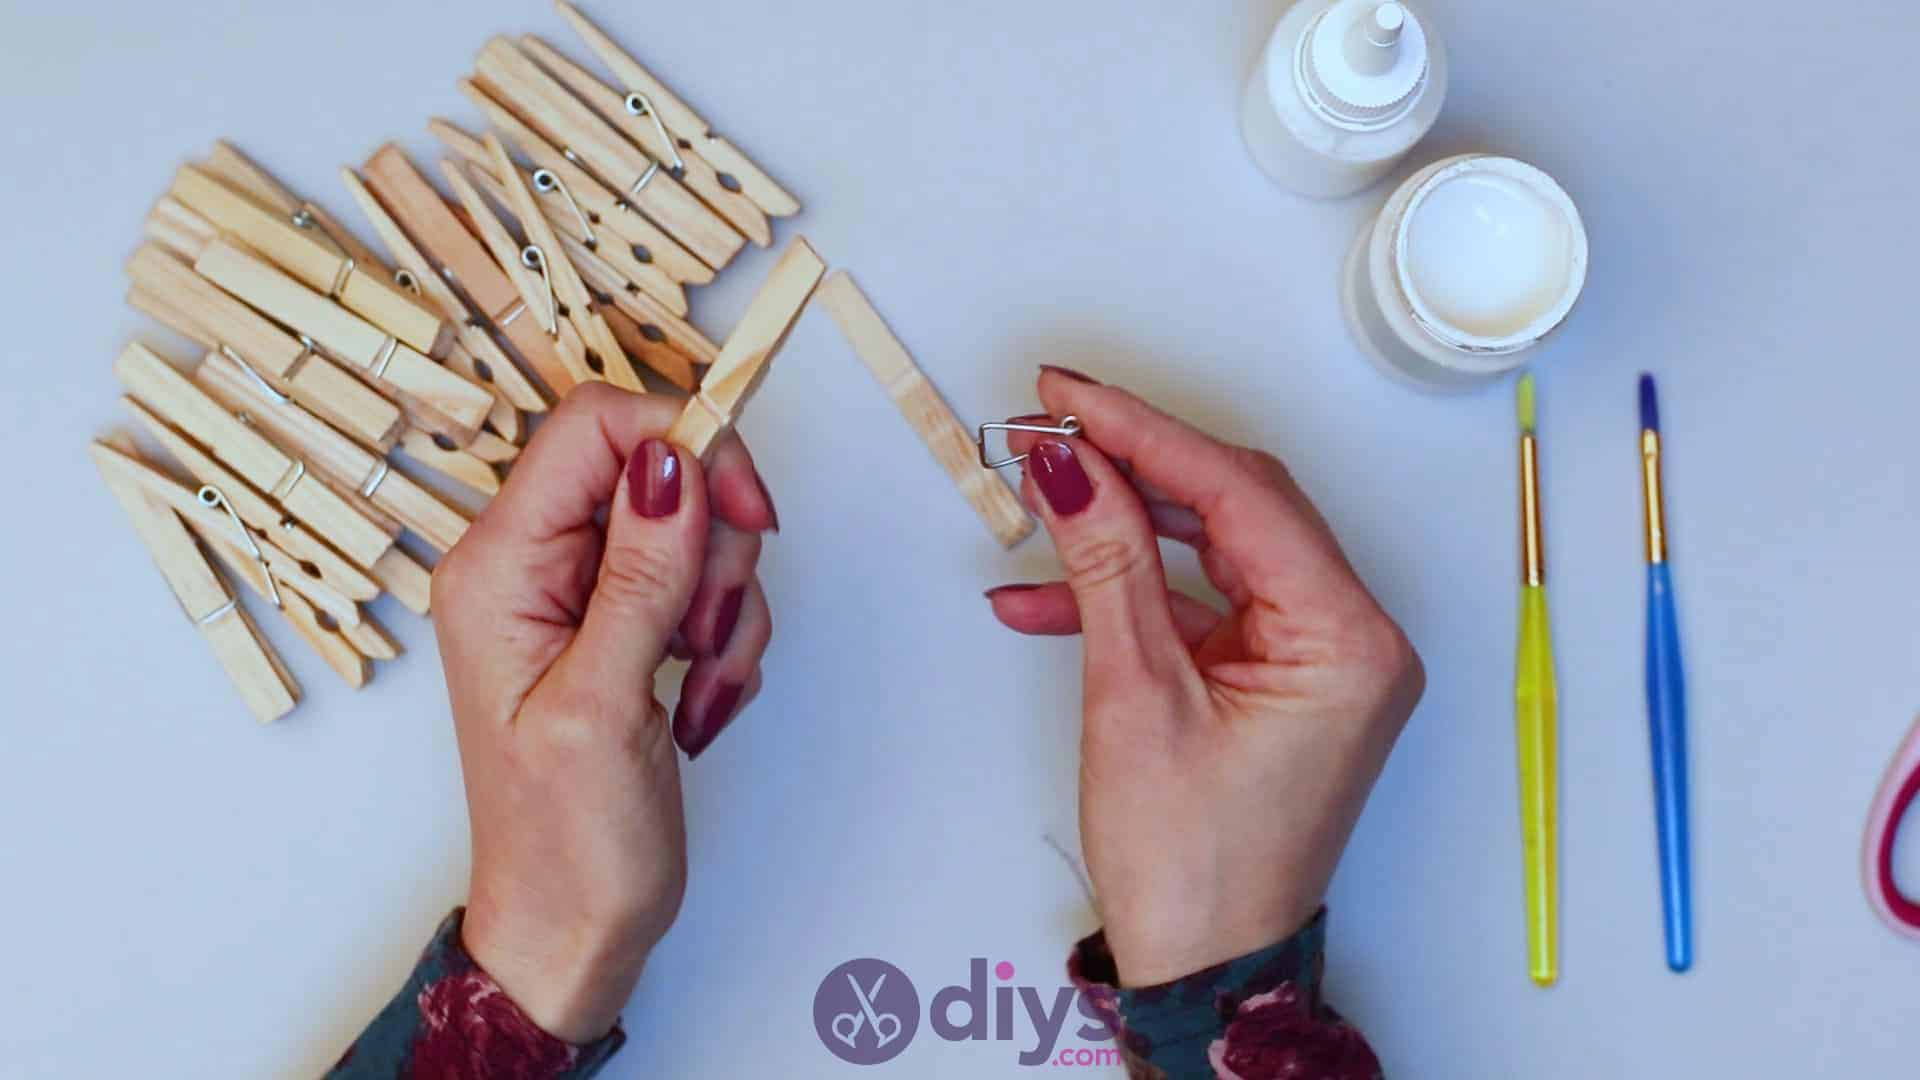 Diy clothespin napkin holder step 2c